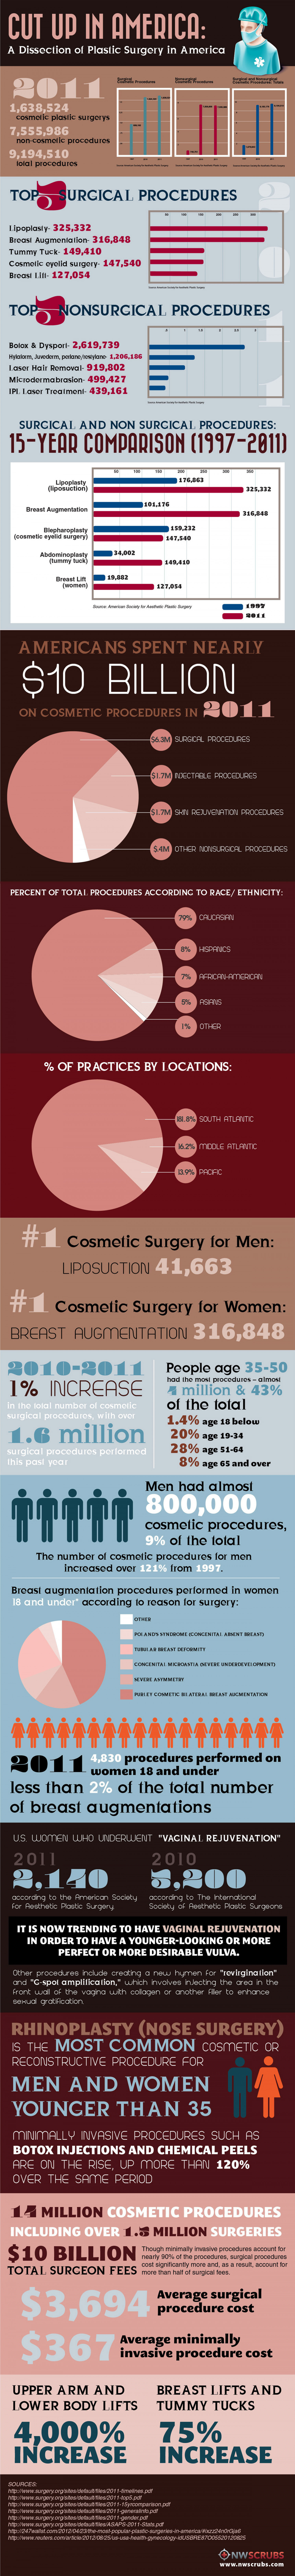 Cut Up in America: A Dissection of Plastic Surgery in America Infographic